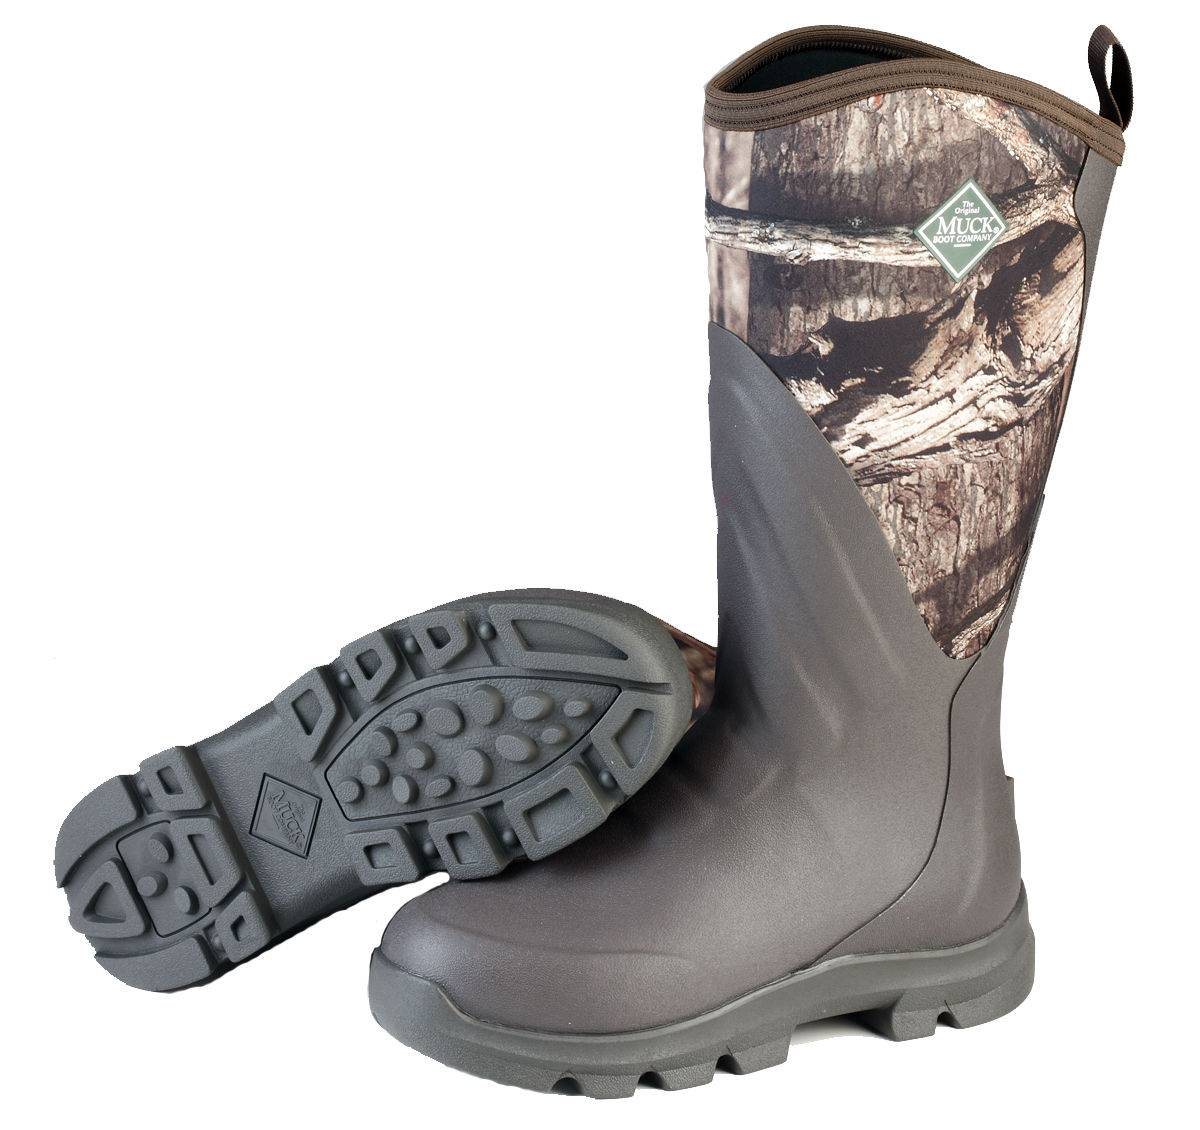 Muck Boots Woody Grit - Mens - Brown/Infinity